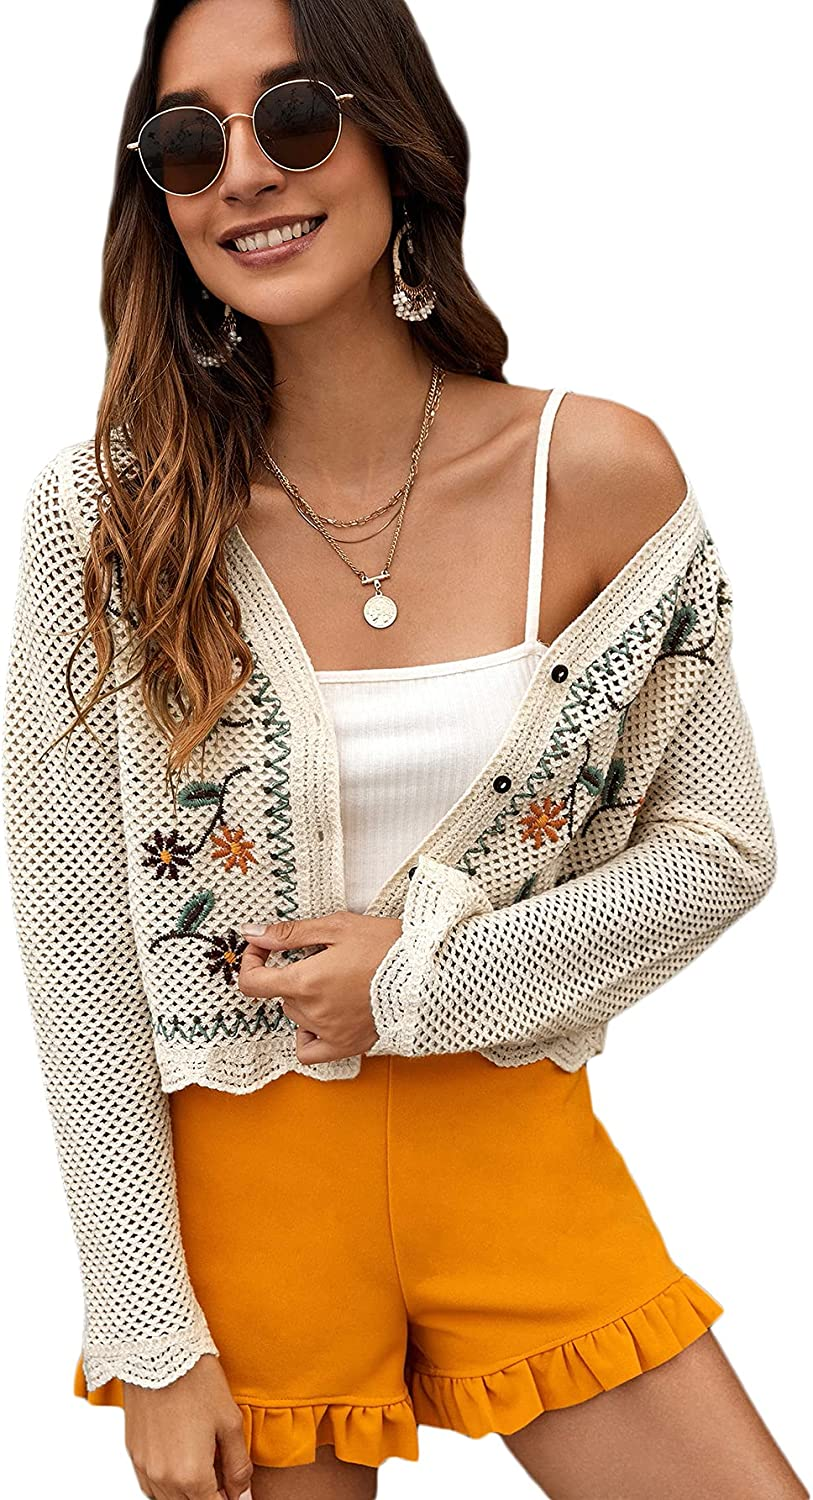 MakeMeChic Women's Floral Embroidery Button Up Long Sleeve Cardigan Crop Top